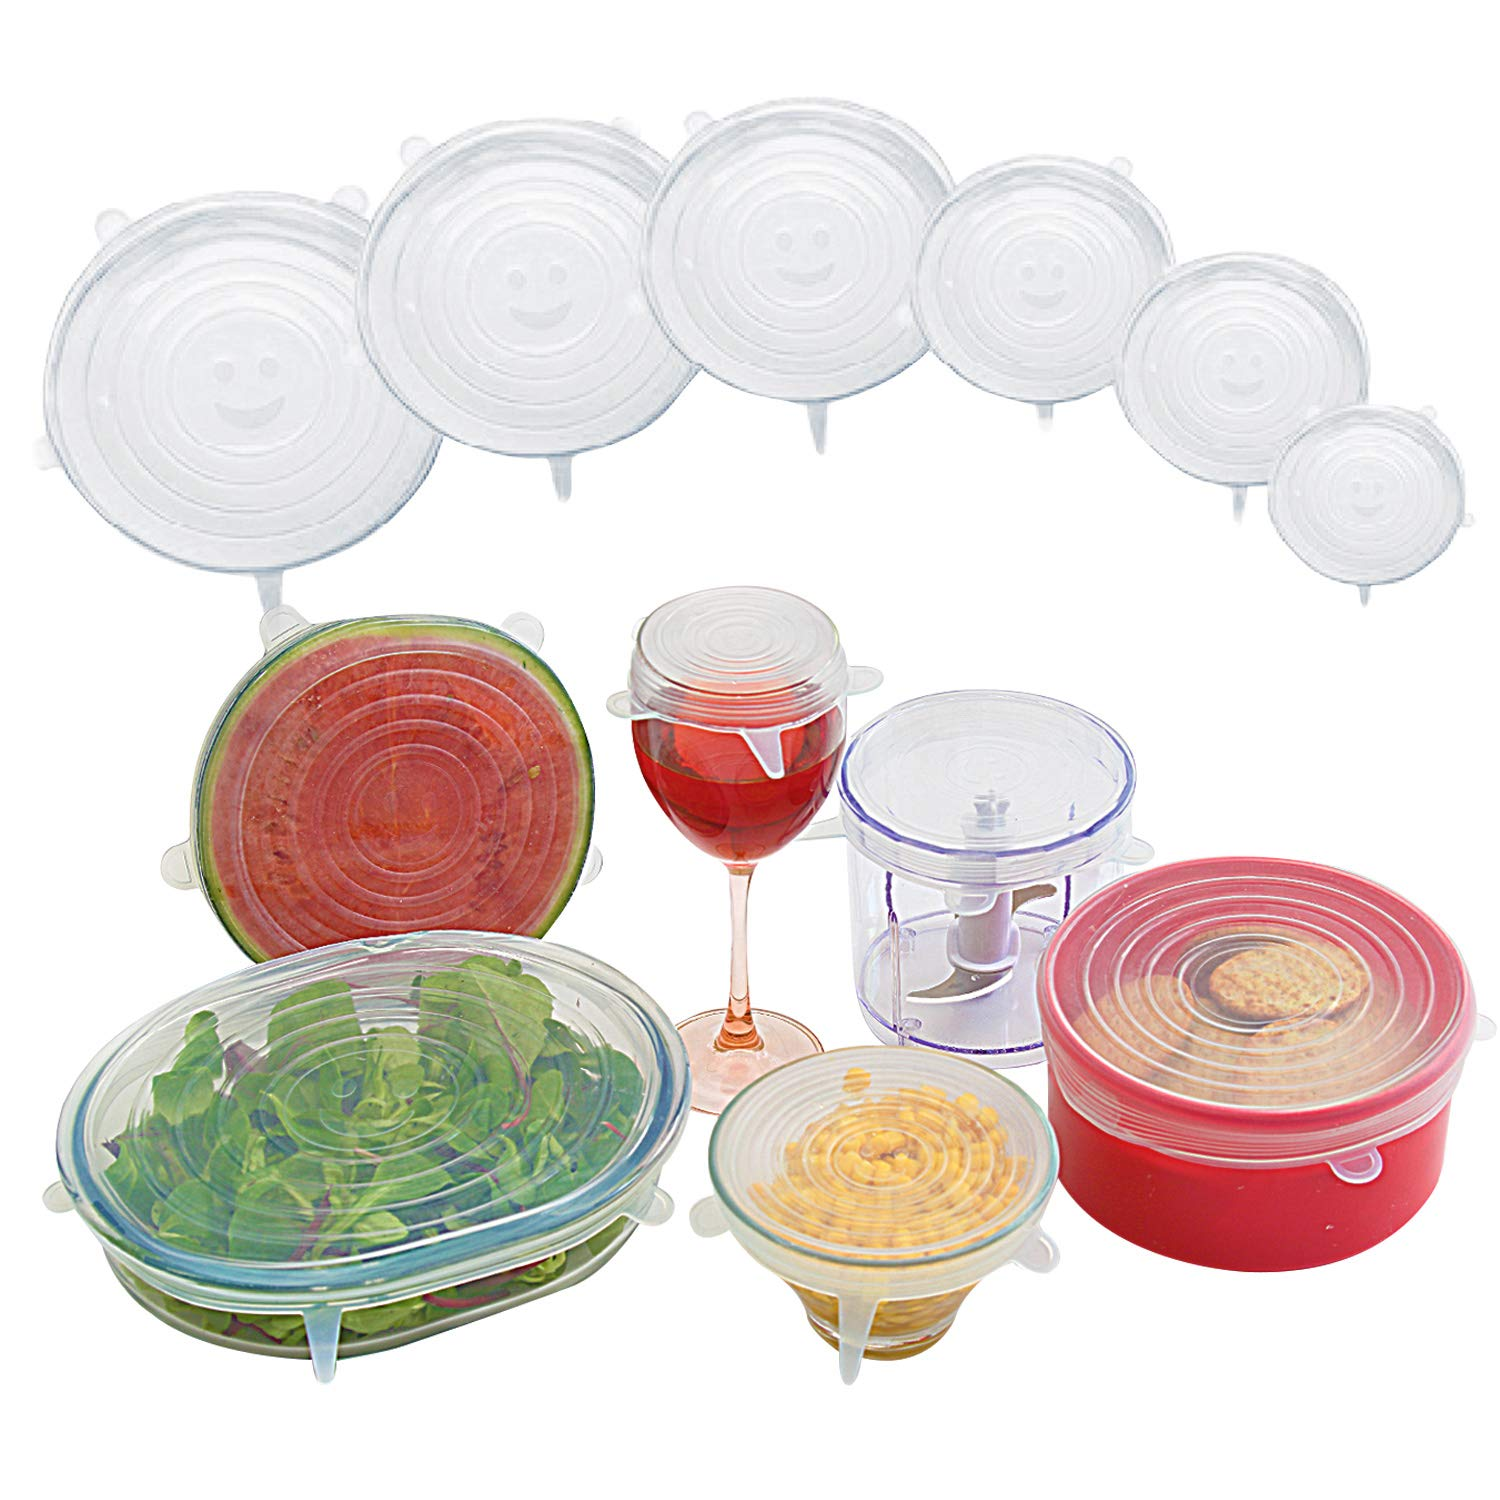 Silicon stretch lids, food storage covers - Multi-purpose, Re-usable, Flexible, Expandable and Durable - dishwasher, microwave, freezer and refrigerator safe. Fits pots, pans, Tupperware boxes, cans,